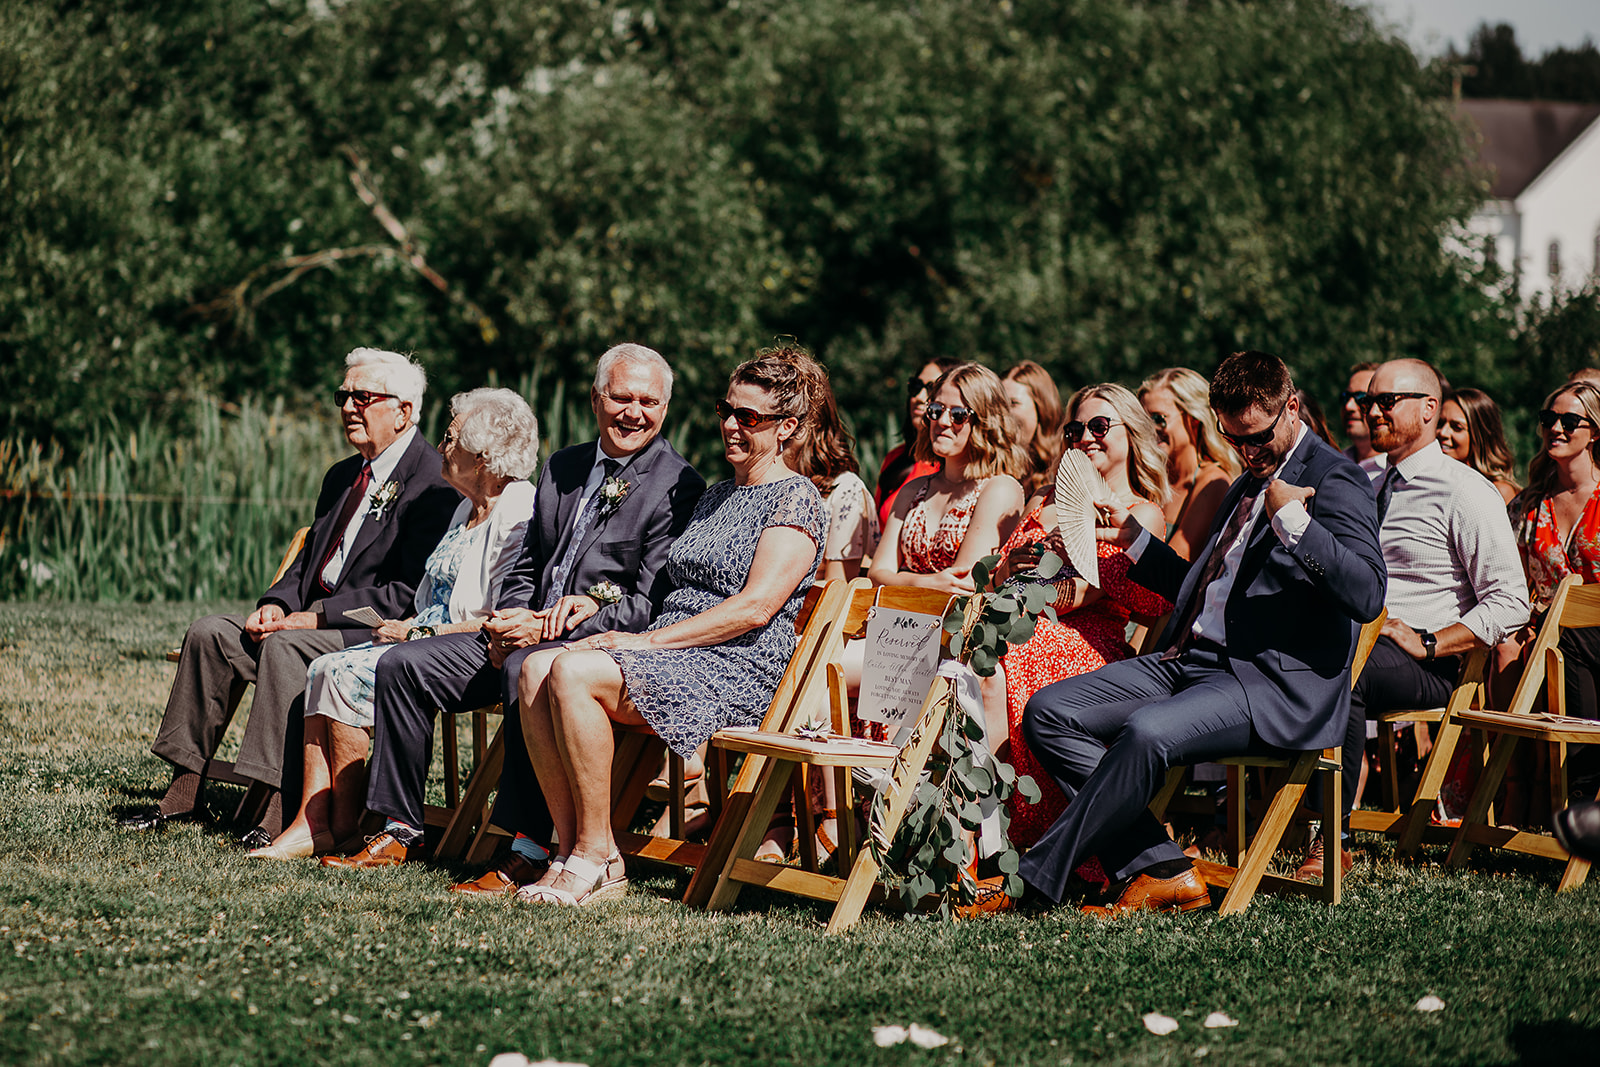 mount-vernon-wedding-salt-box-barn-amanda-riley-megan-gallagher-photography-1_(90_of_351).jpg